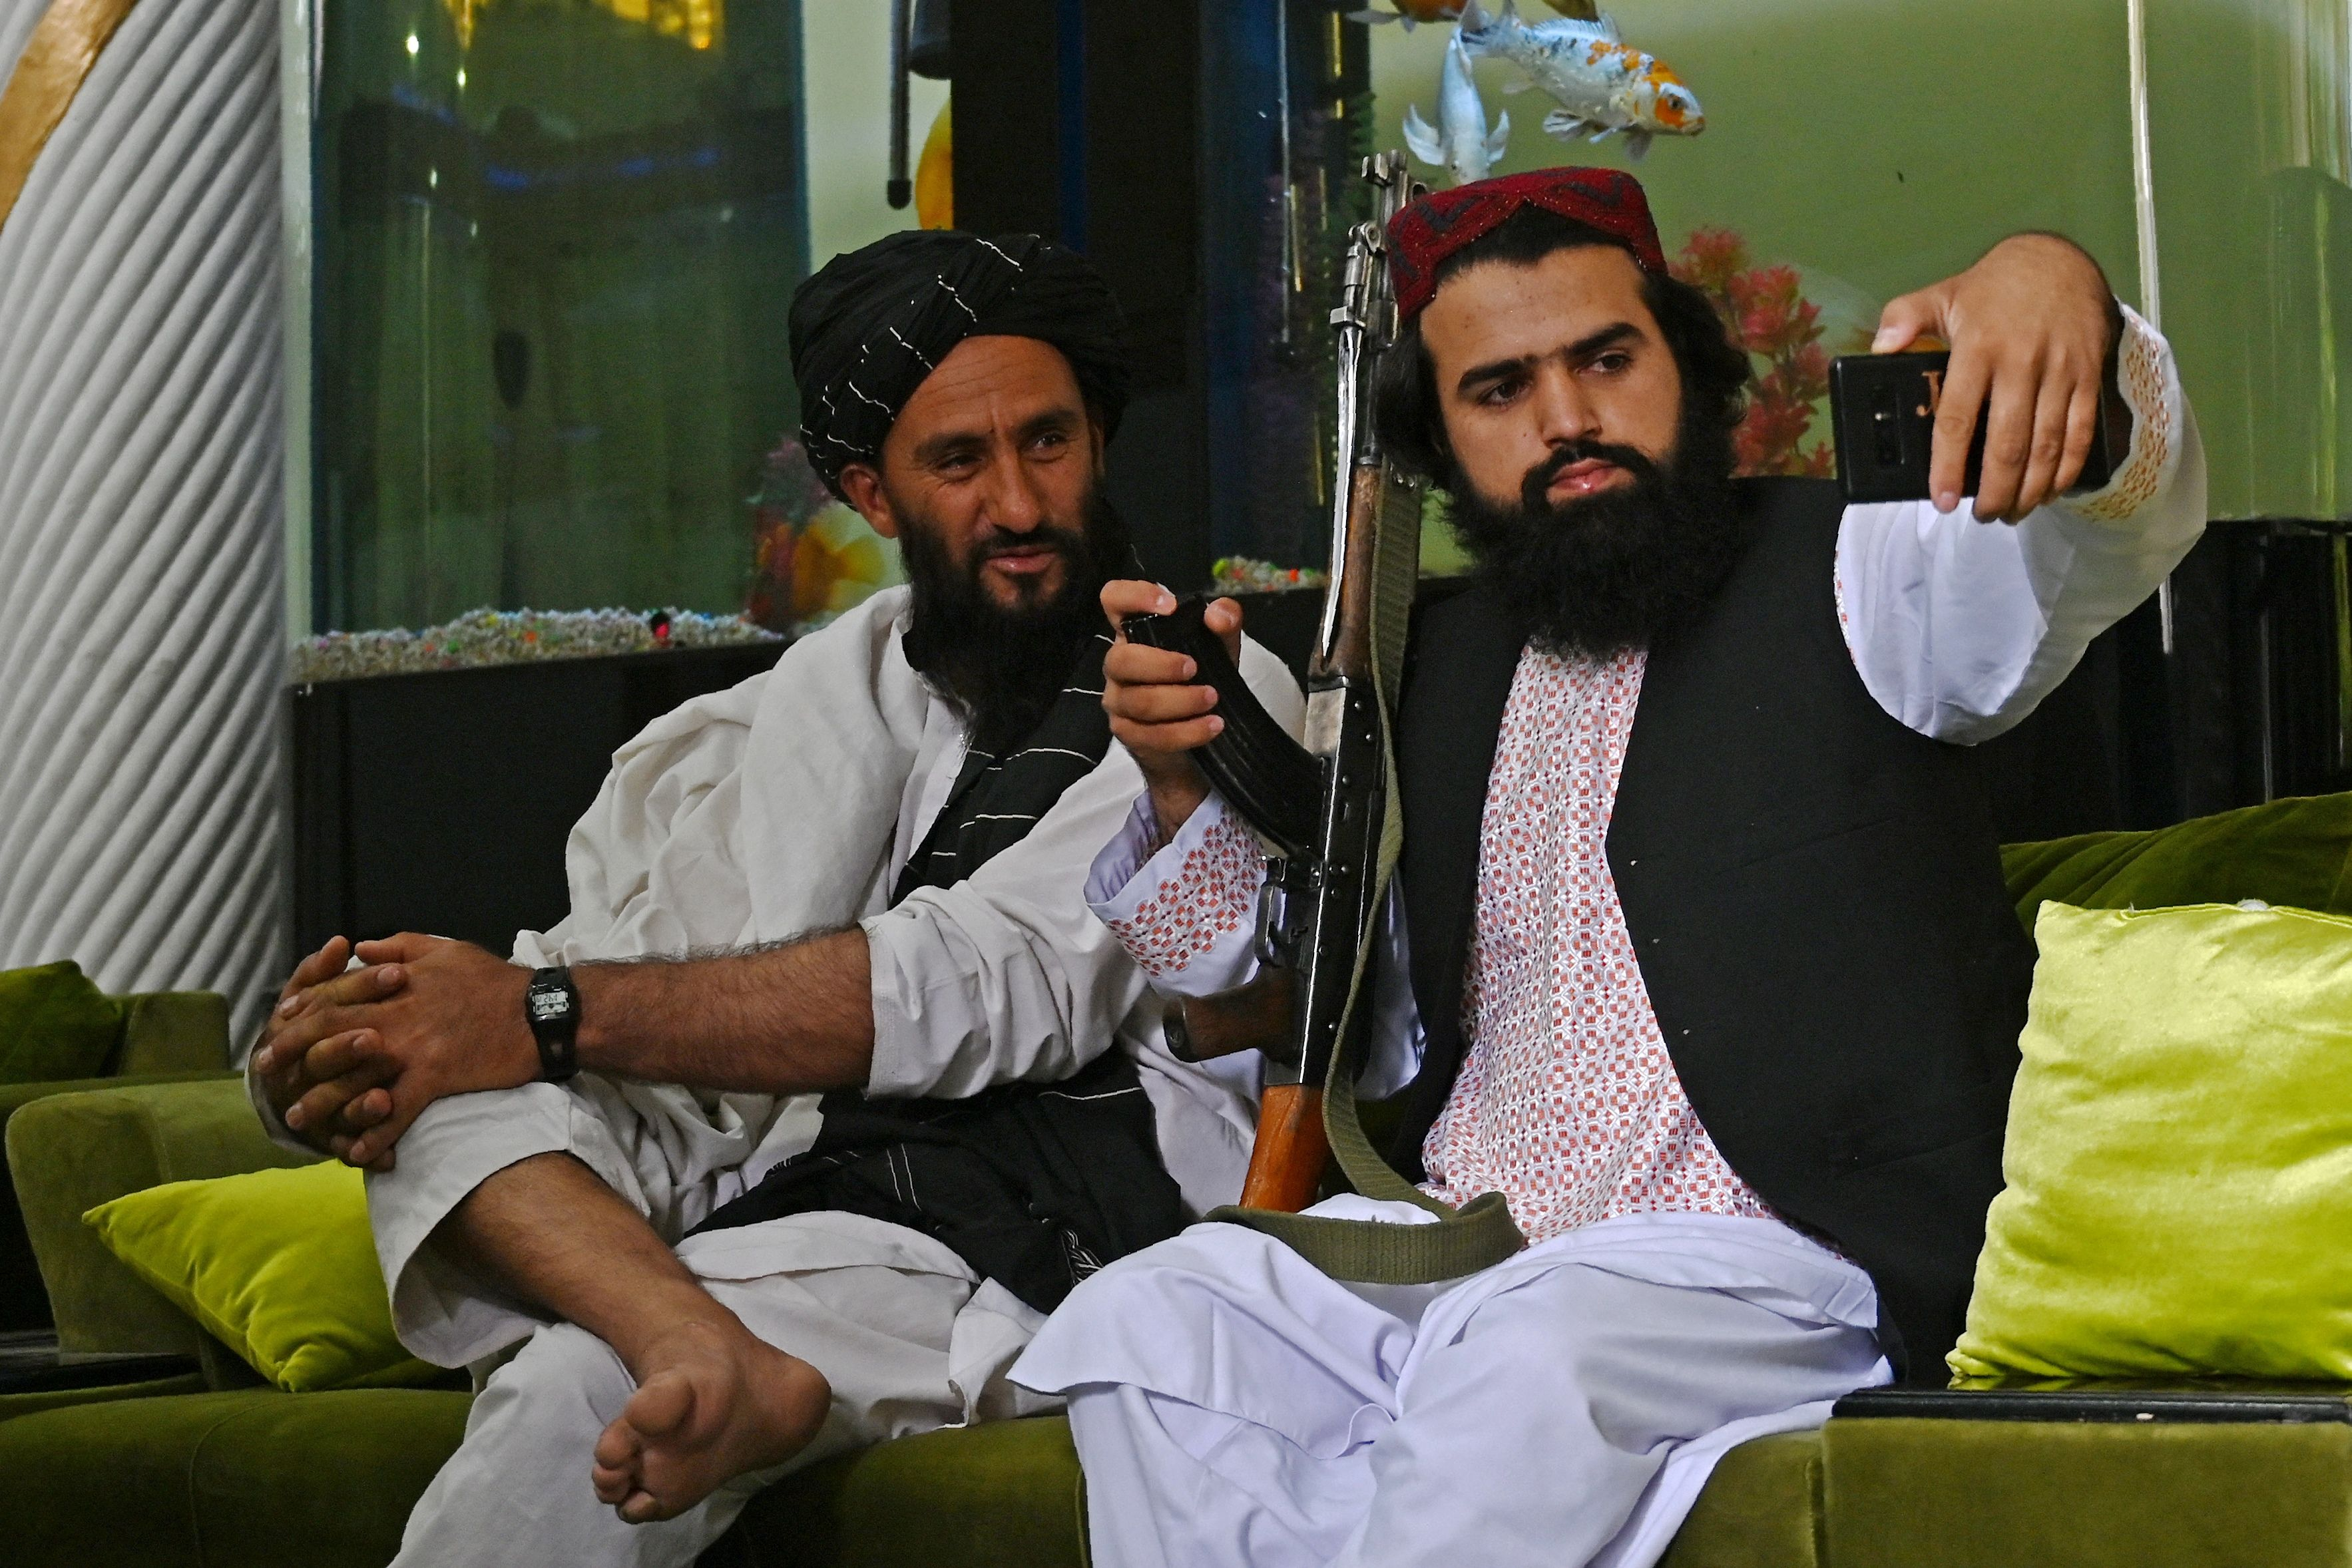 Taliban fighters take a selfie in Kabul's Dostum mansion (AFP)